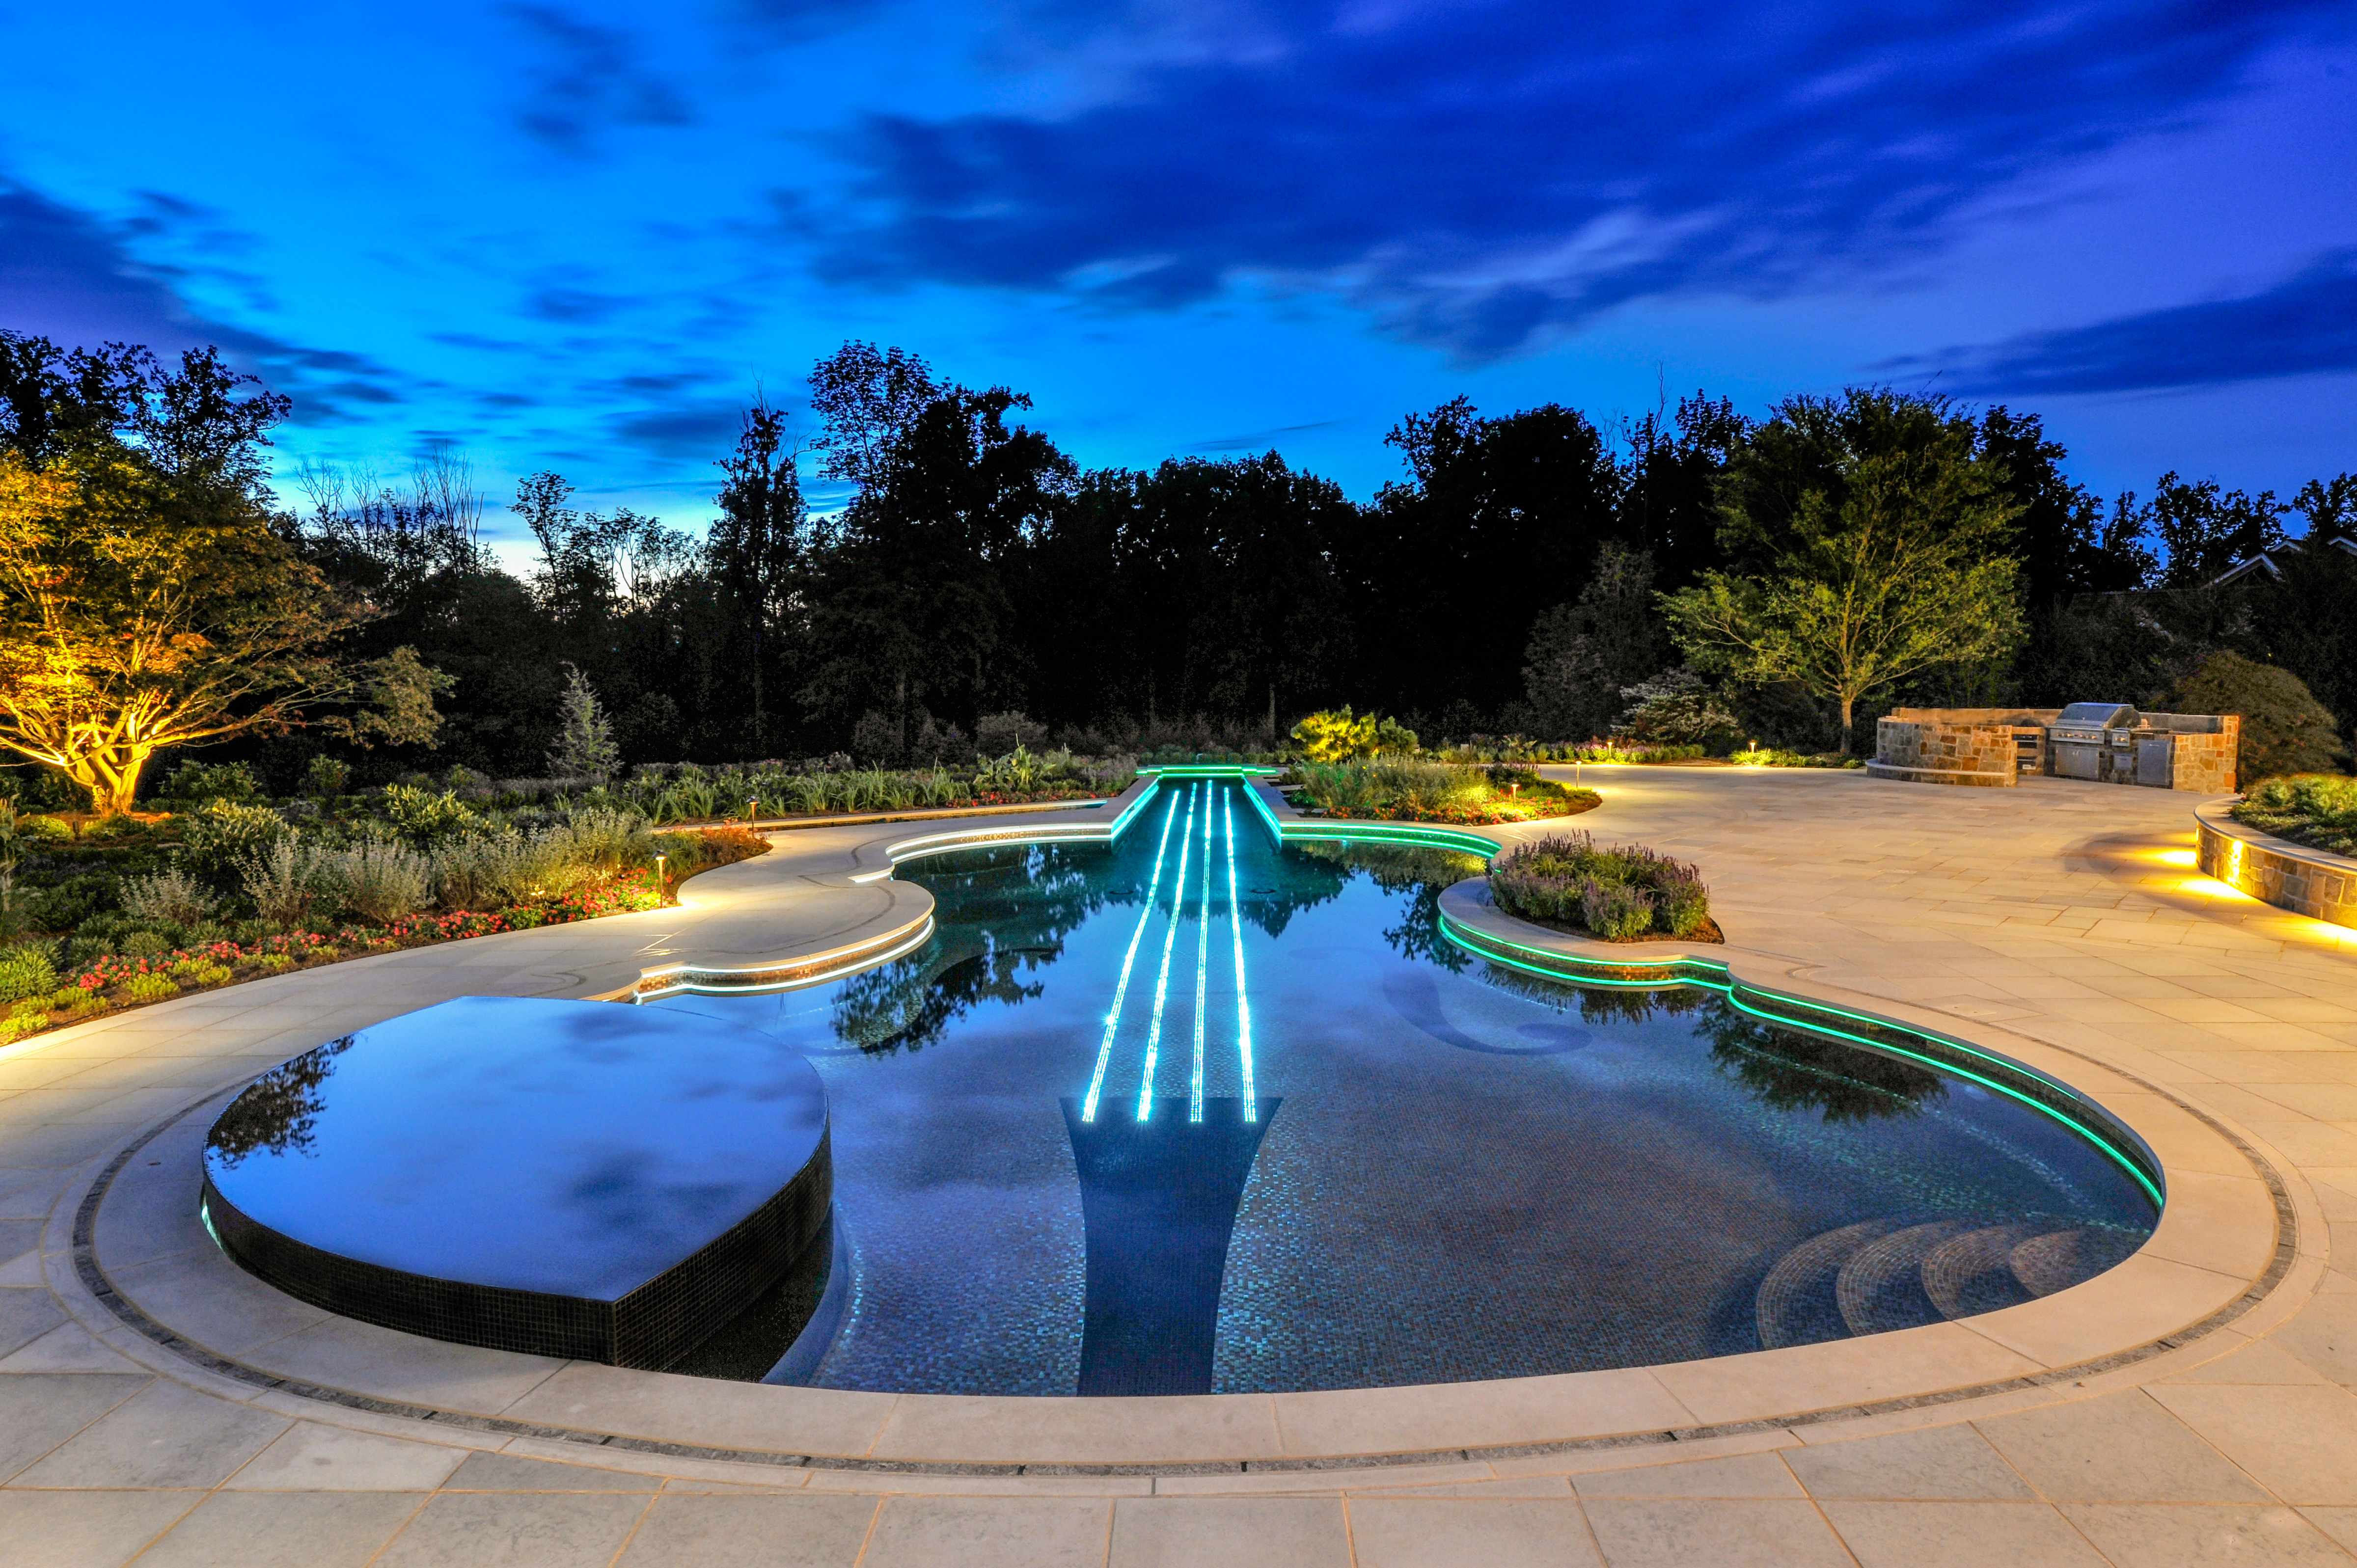 luxury pool and spa design njluxury color led swimming pool and spa design and installation bergen county nj - Swimming Pool And Spa Design